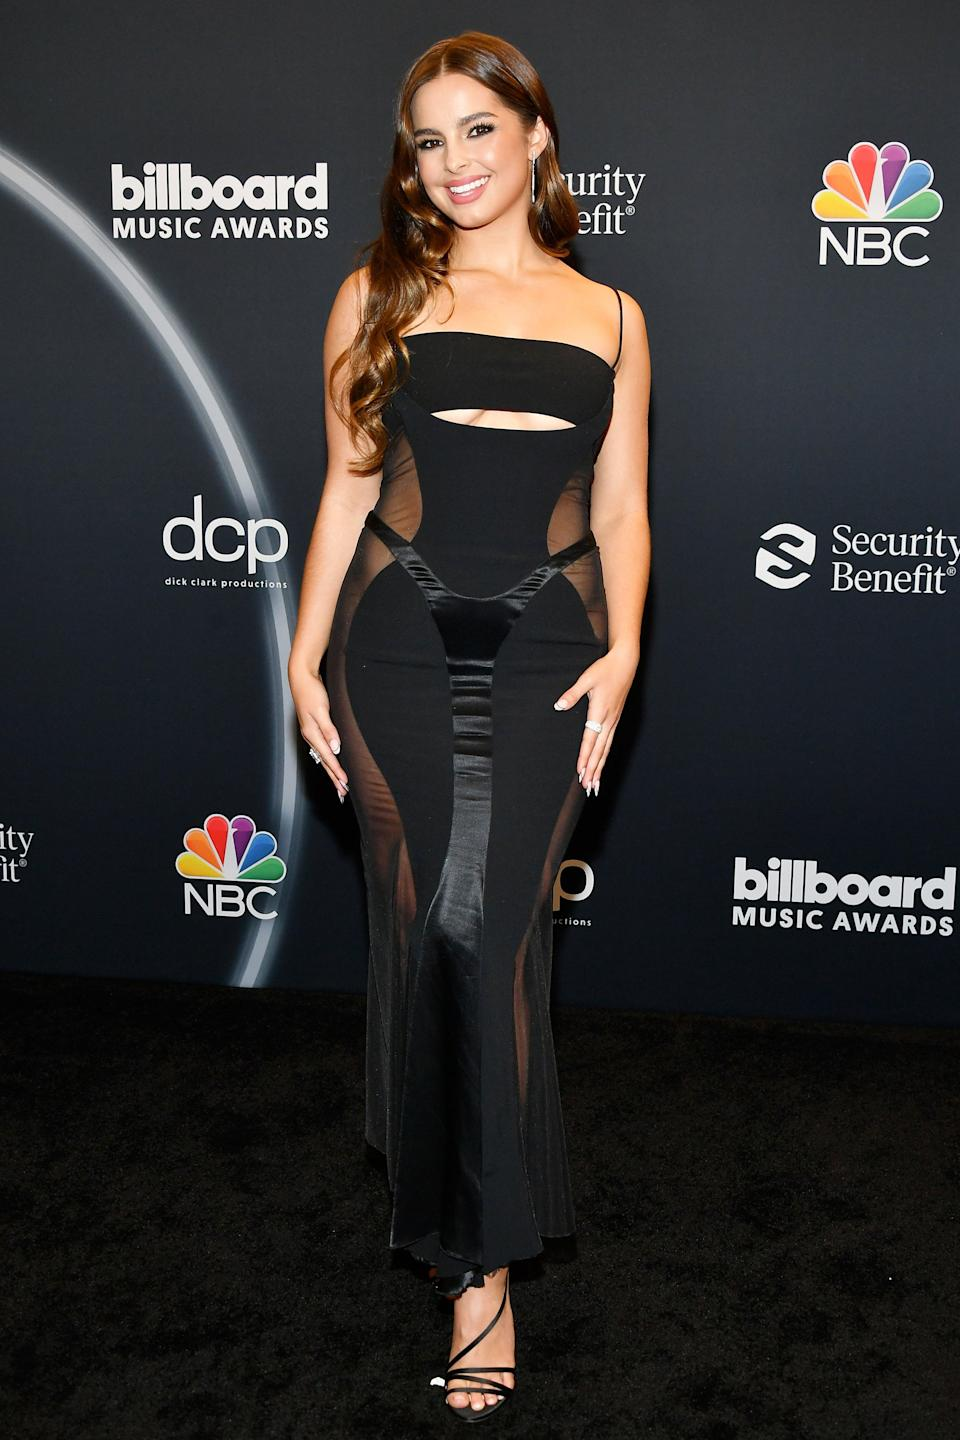 "<h2>Addison Rae in Mugler</h2><br>TikTok star Addison Rae took a cue from her lockdown BFF Kourtney Kardashian and wore a black, ultra-sexy Mugler dress to the BBMAs this year. <span class=""copyright"">Photo: Amy Sussman/BBMA2020/Getty Images for dcp.</span>"